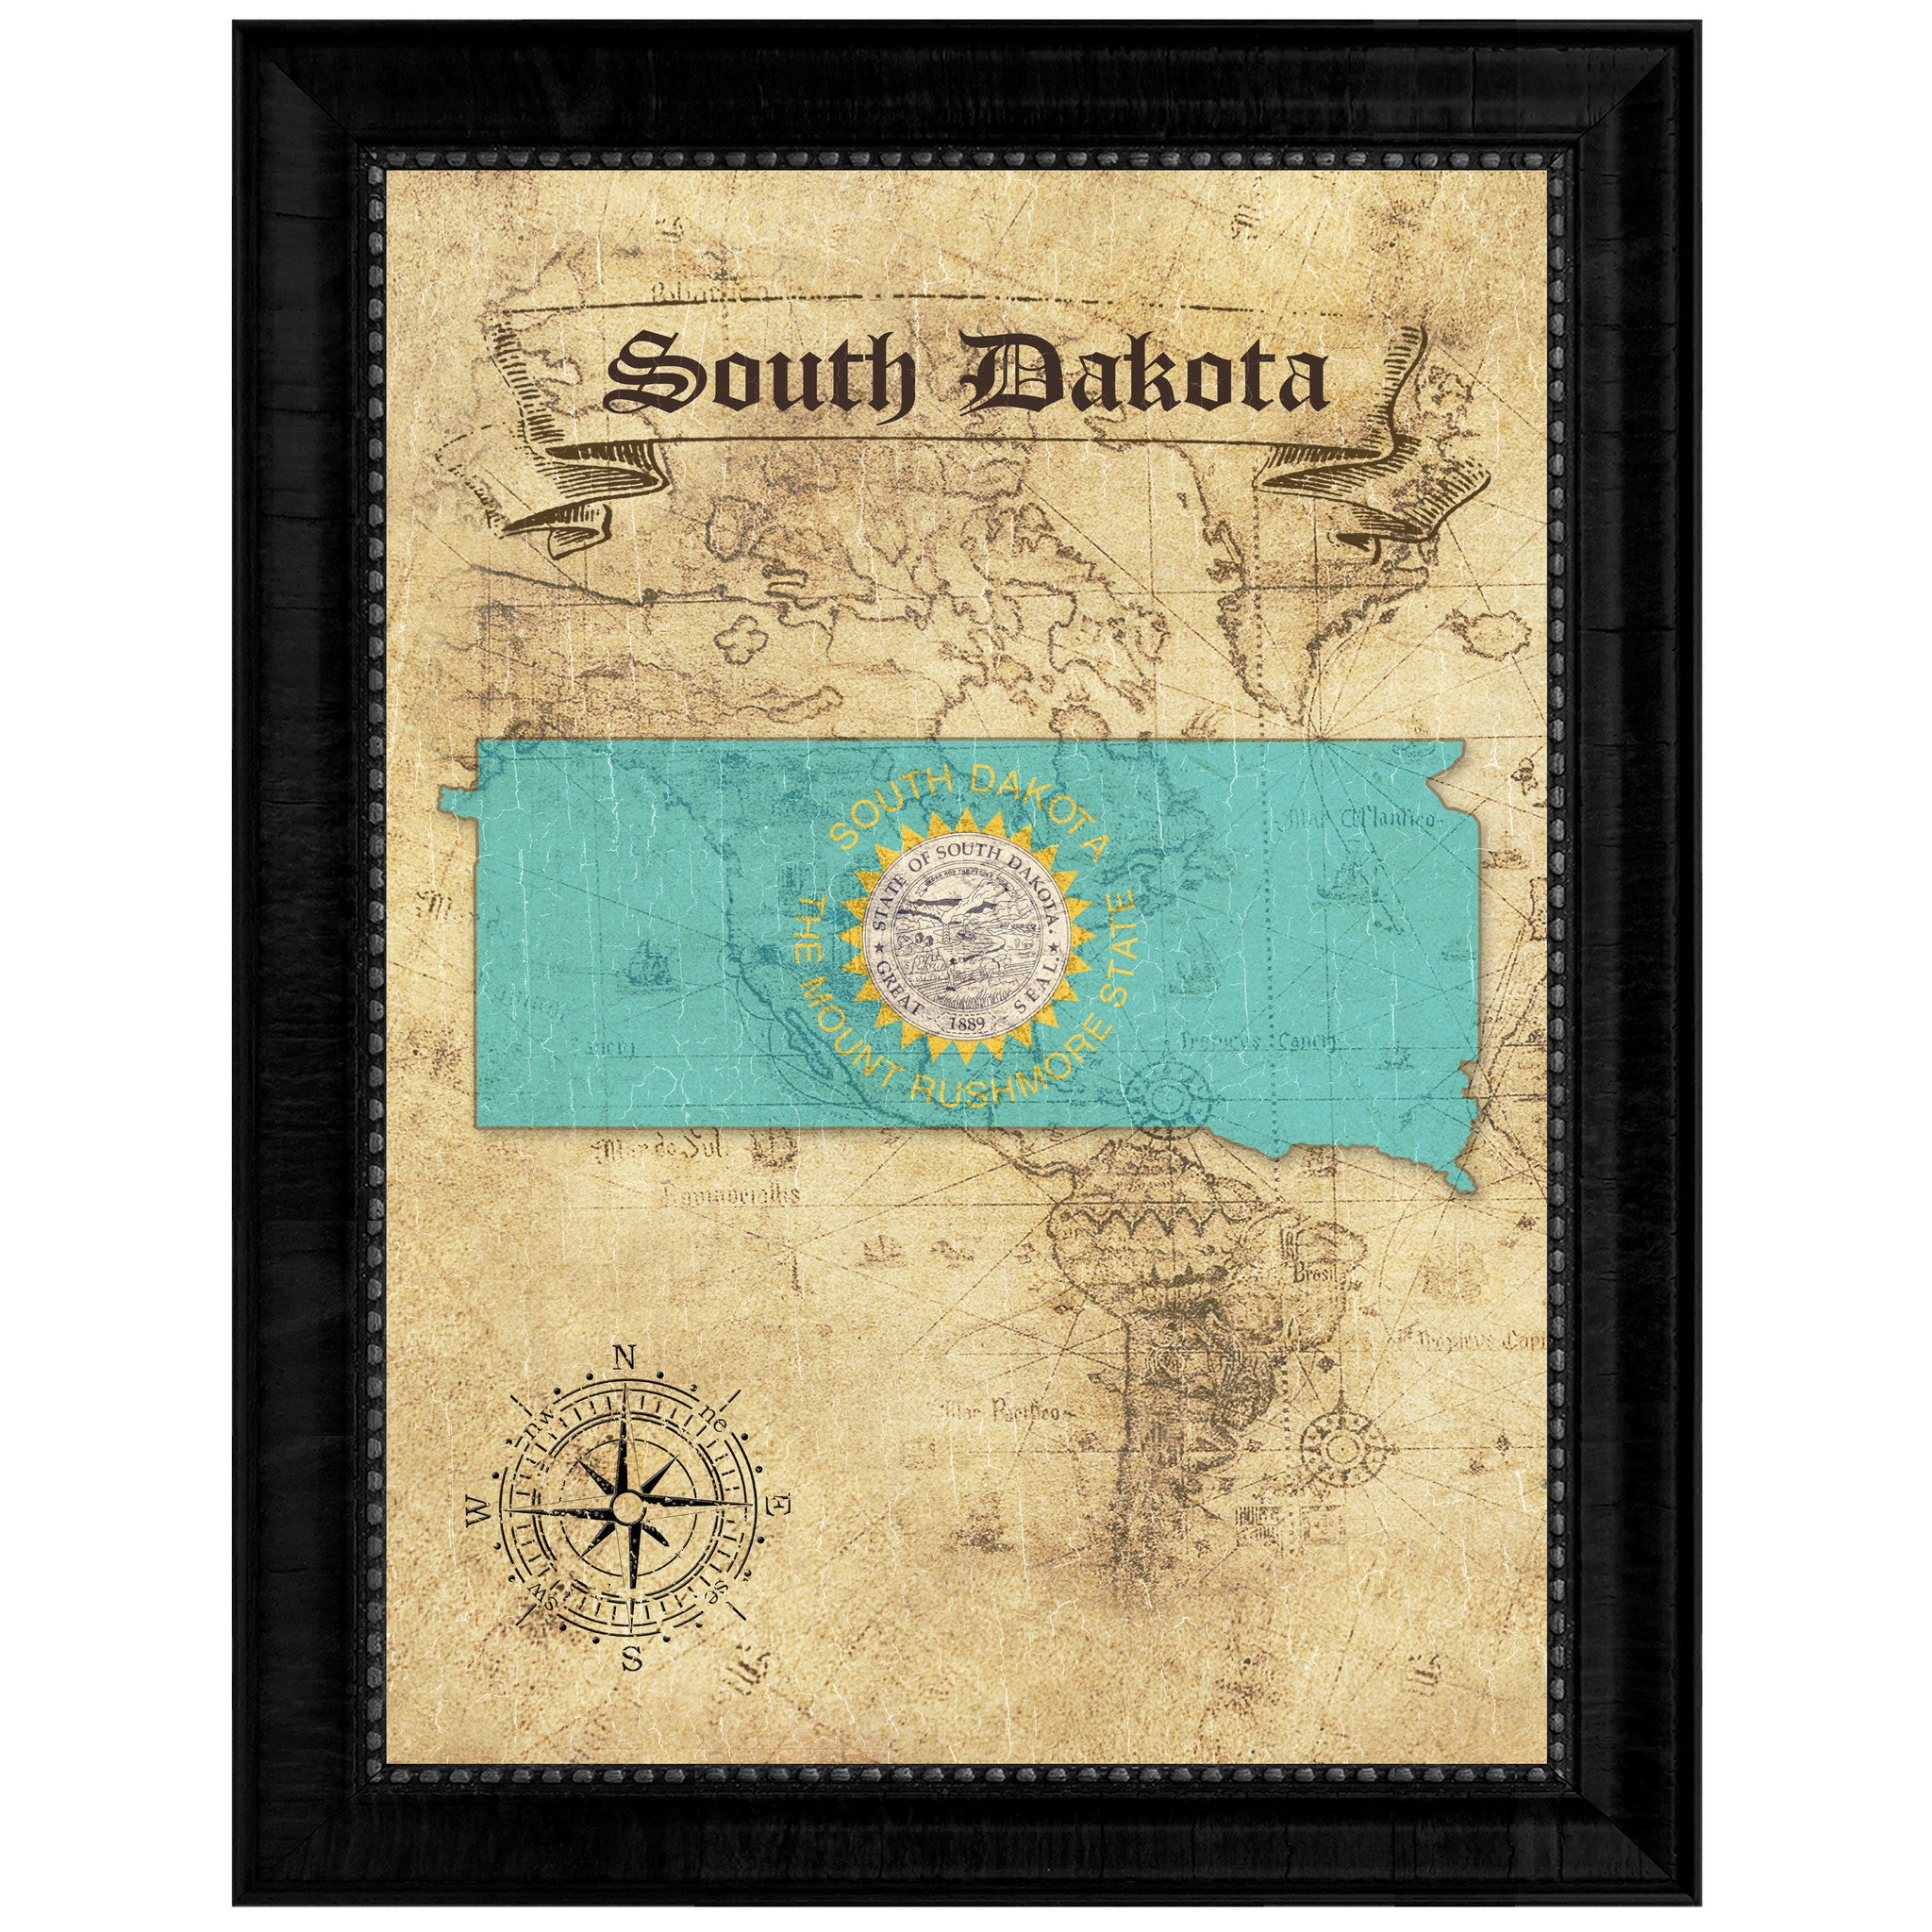 South DakotaState Vintage MapArt Office Wall Home Decor Rustic Gift ...